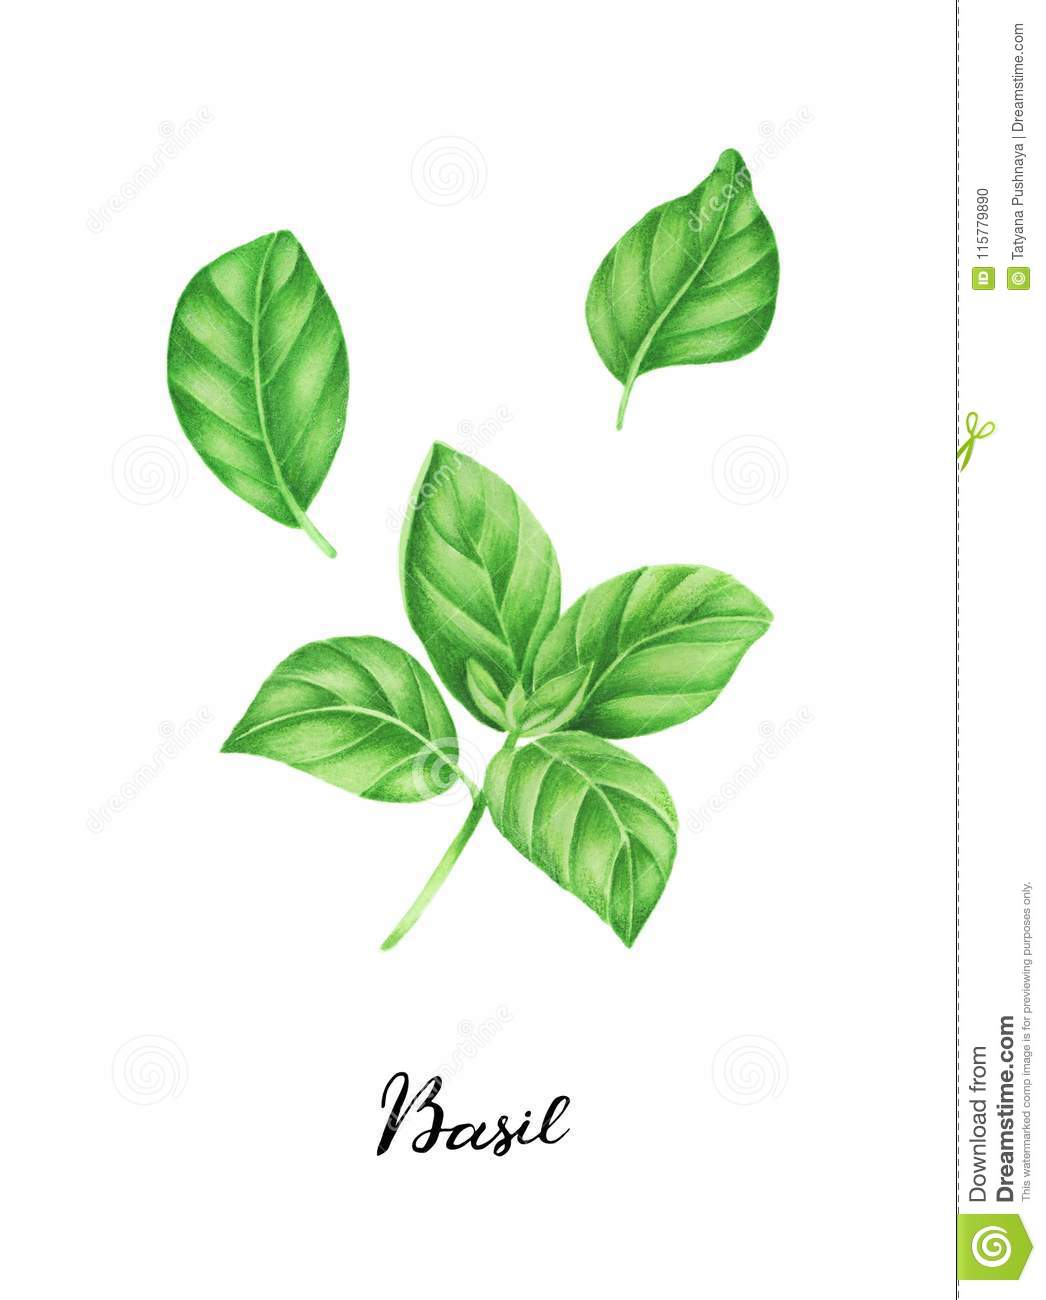 Illustration Of Basil And Lettering Watercolor Painting Stock